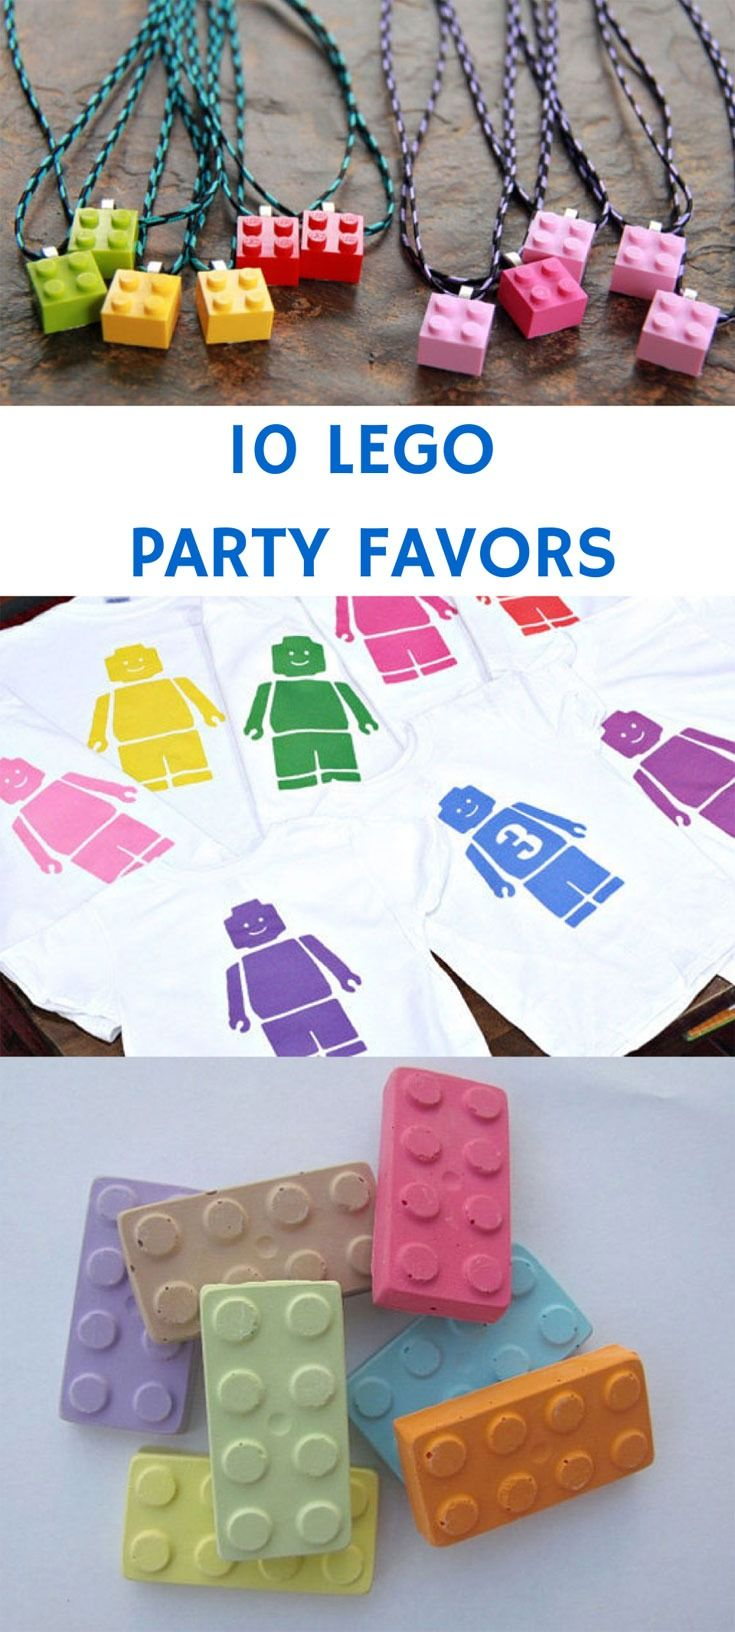 Awesome lego party favors for little ones.